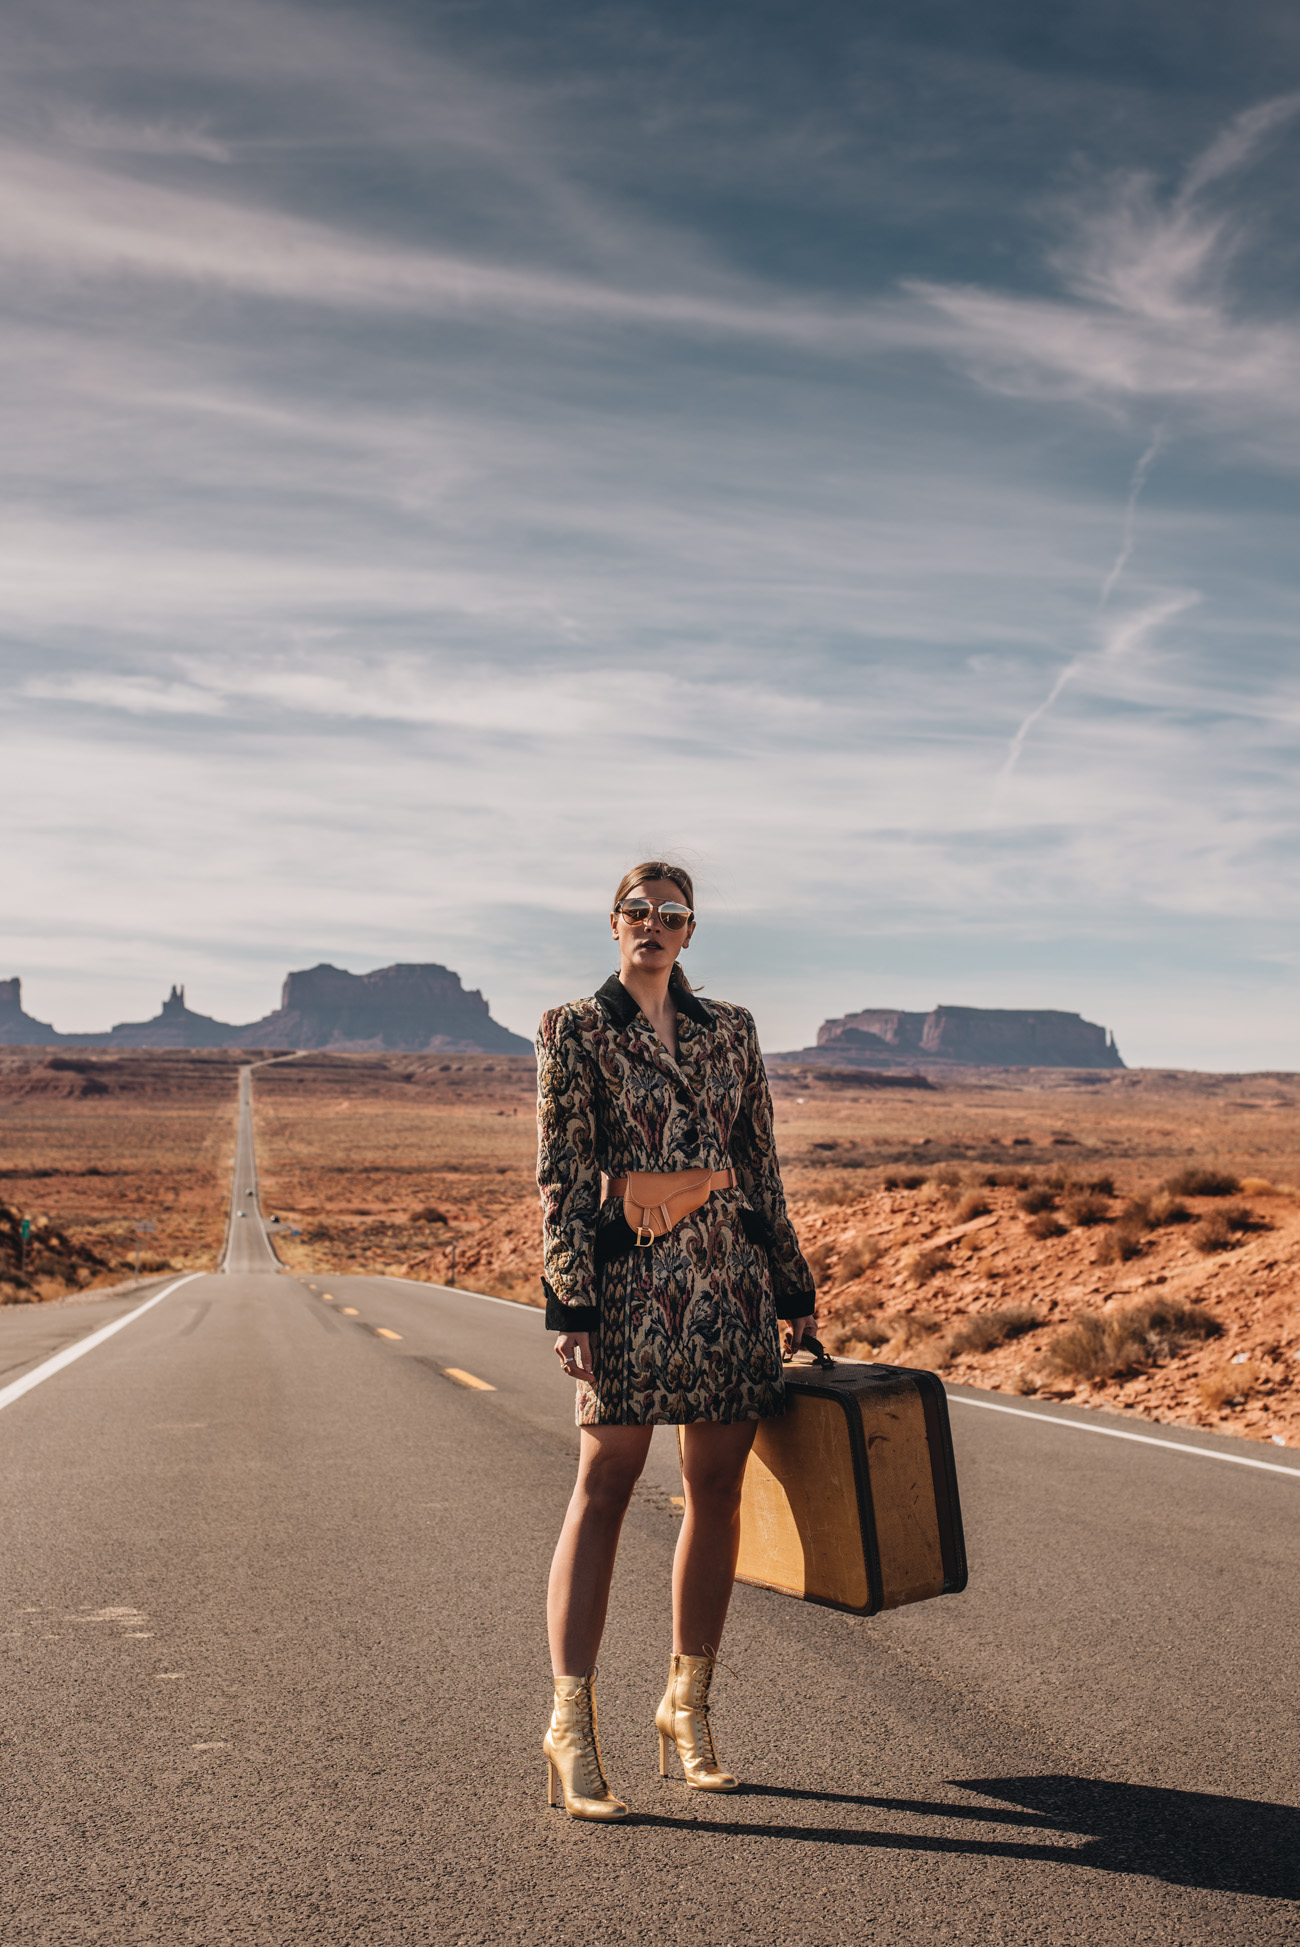 Fashion-editorial-shooting-Mode-Fotoshooting-wüste-highway-monument-valley-kalifornien-outdoor-luxus-fashiioncarpet-nina-schwichtenberg